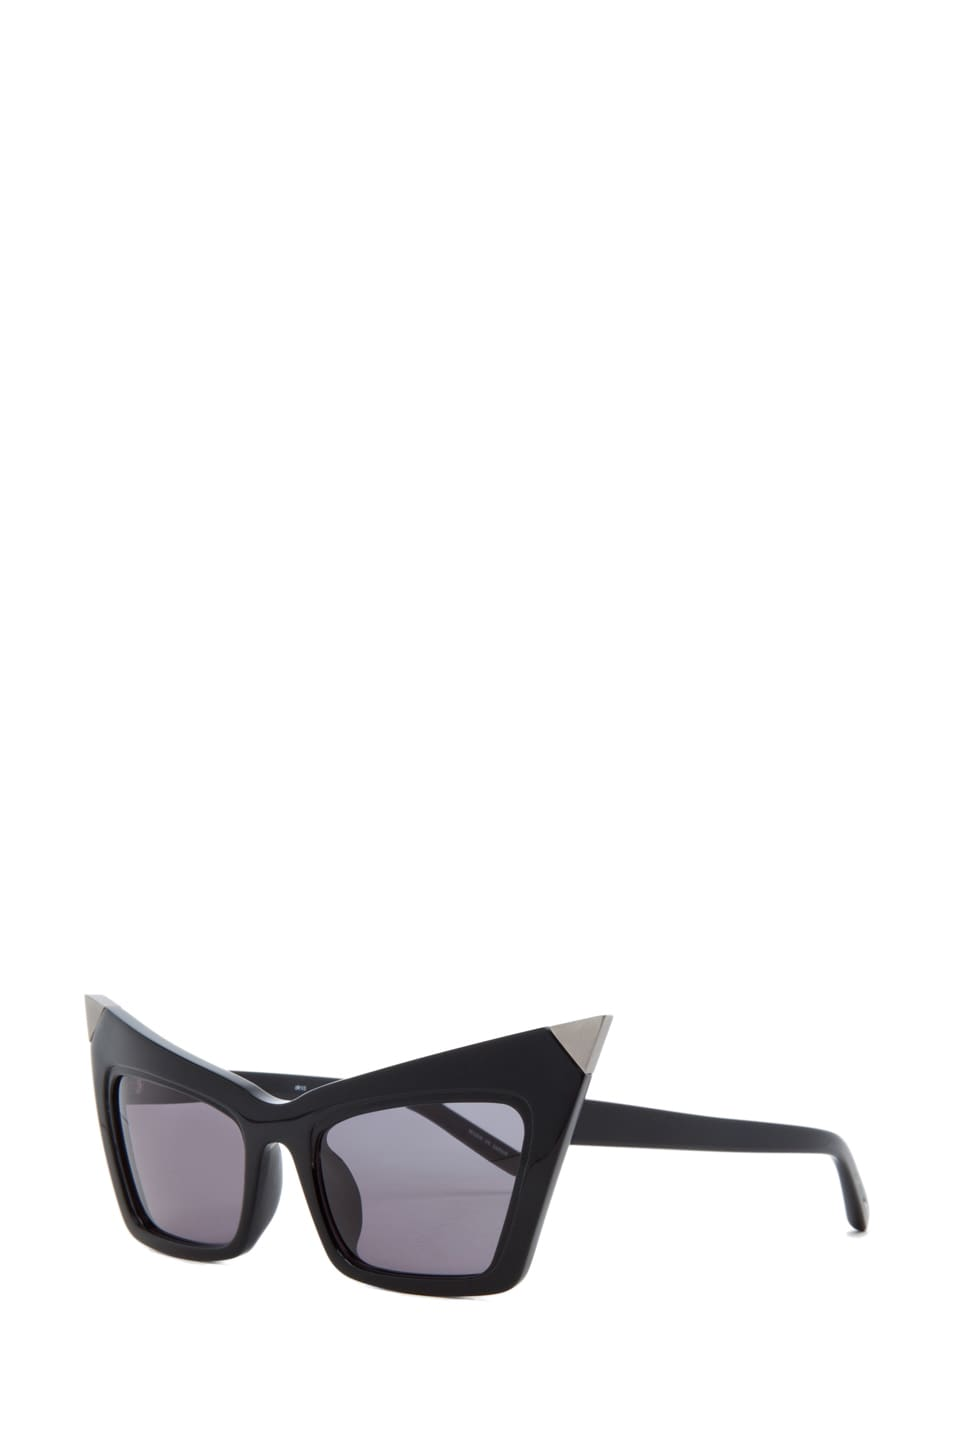 Image 2 of Alexander Wang Cat Eye Sunglasses/Silver in Black